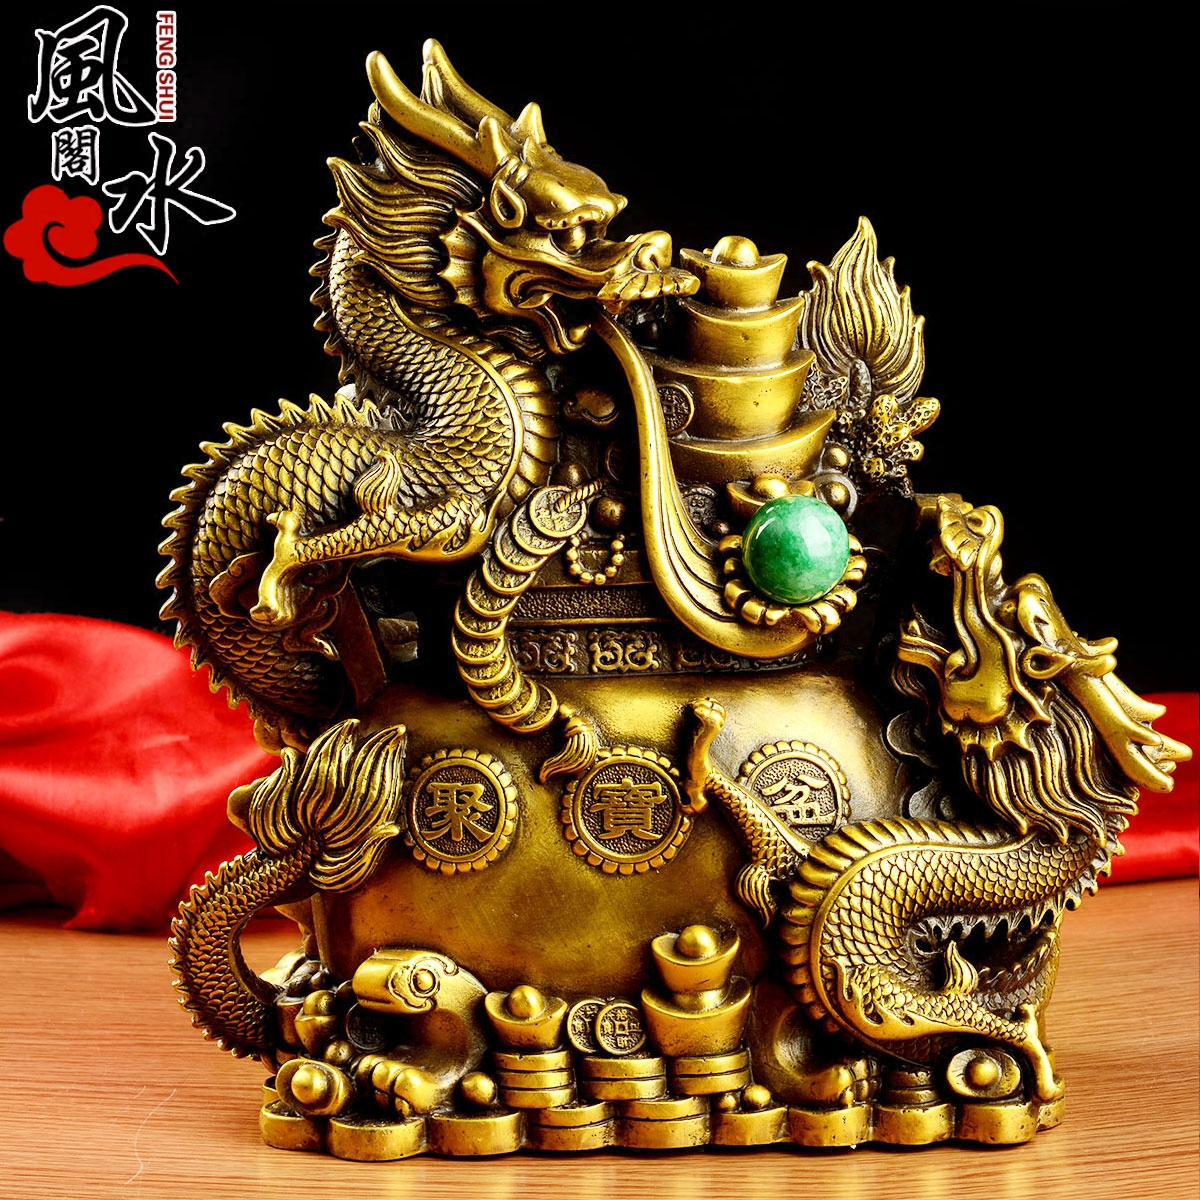 Feng shui house opening of pure copper dragon ornaments cornucopia cornucopia feng shui ornaments dragons disc twelve lunar new year of the dragon